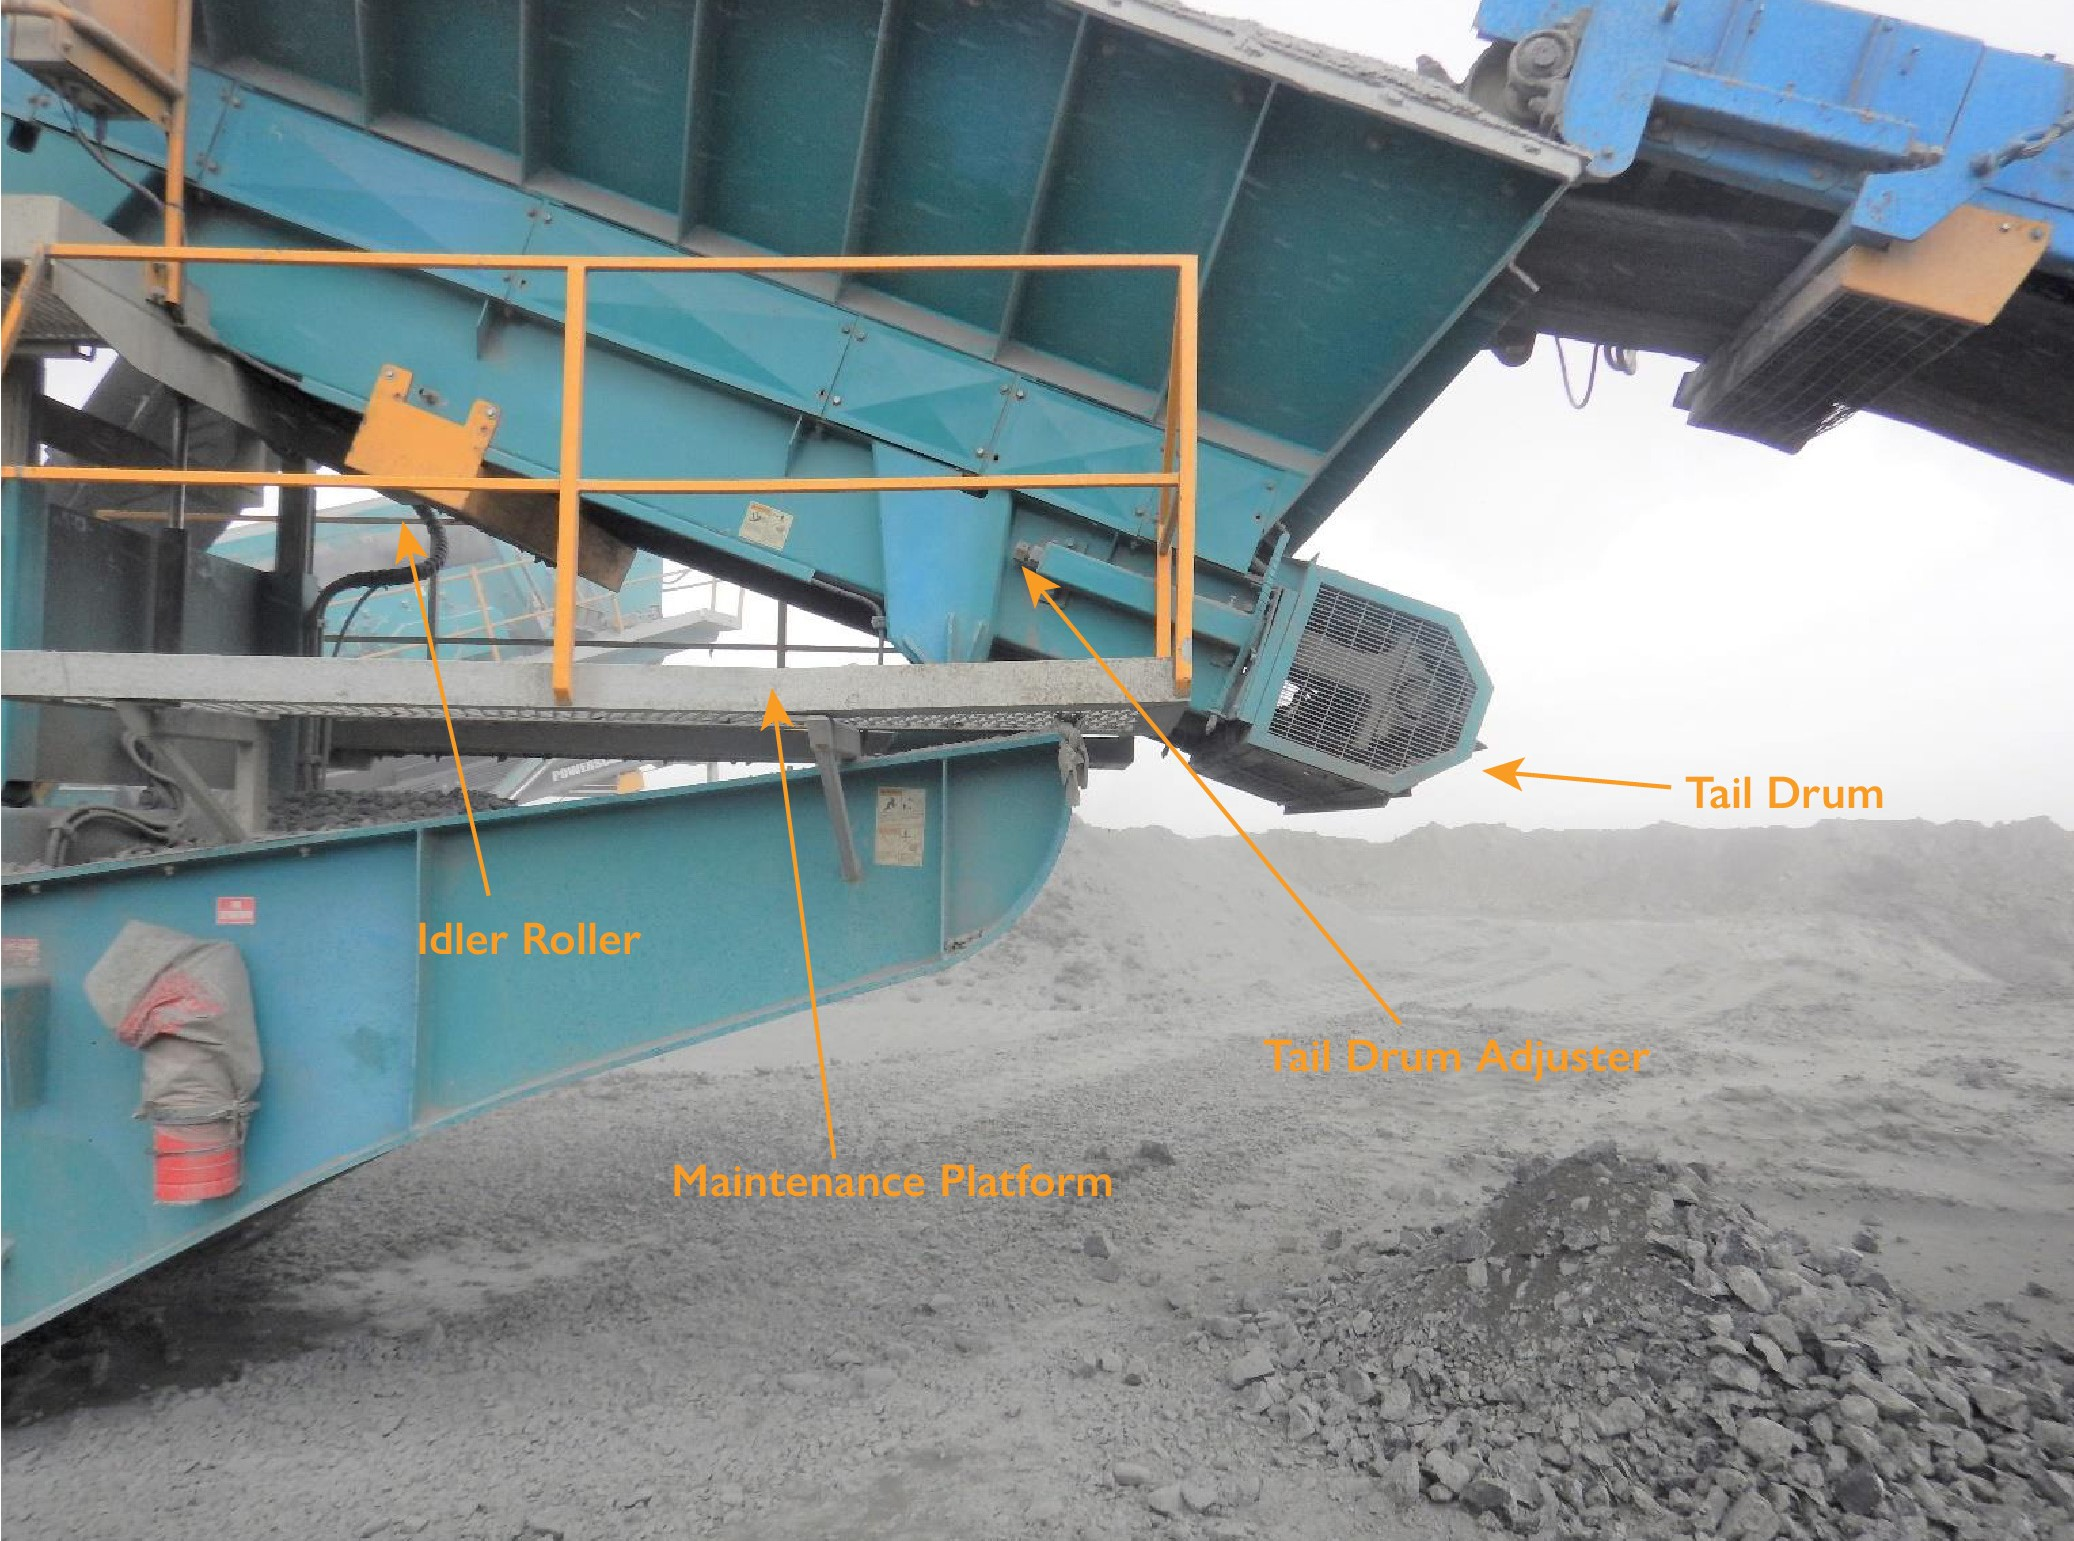 Photo shows detail of conveyor belt where workers was injured